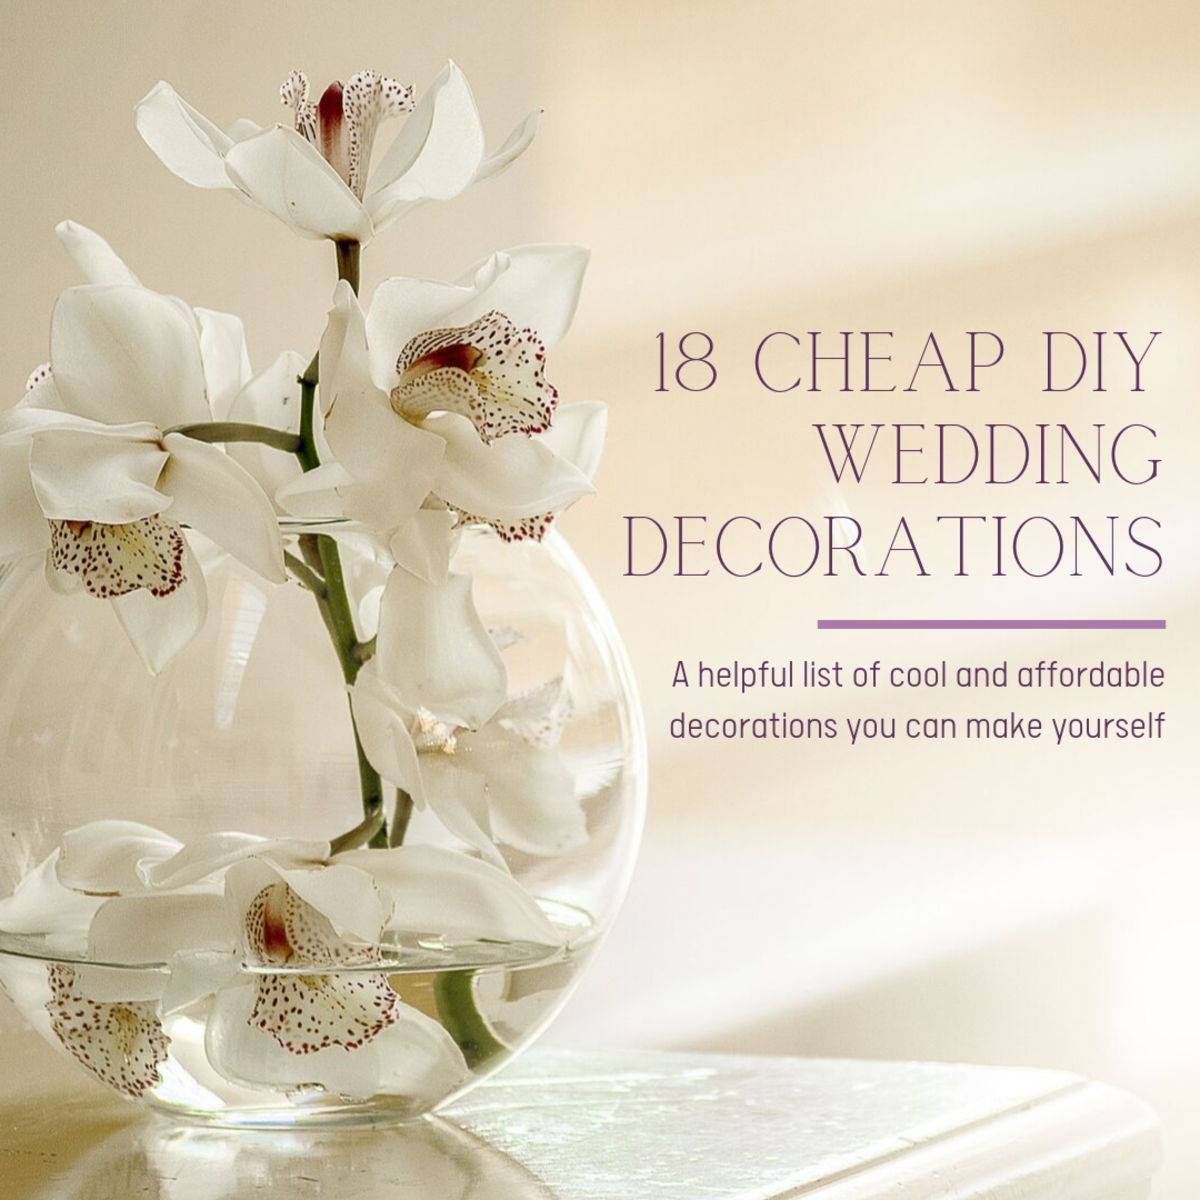 This article will breakdown a list of 18 inexpensive but still incredible ideas for beautiful wedding decorations.